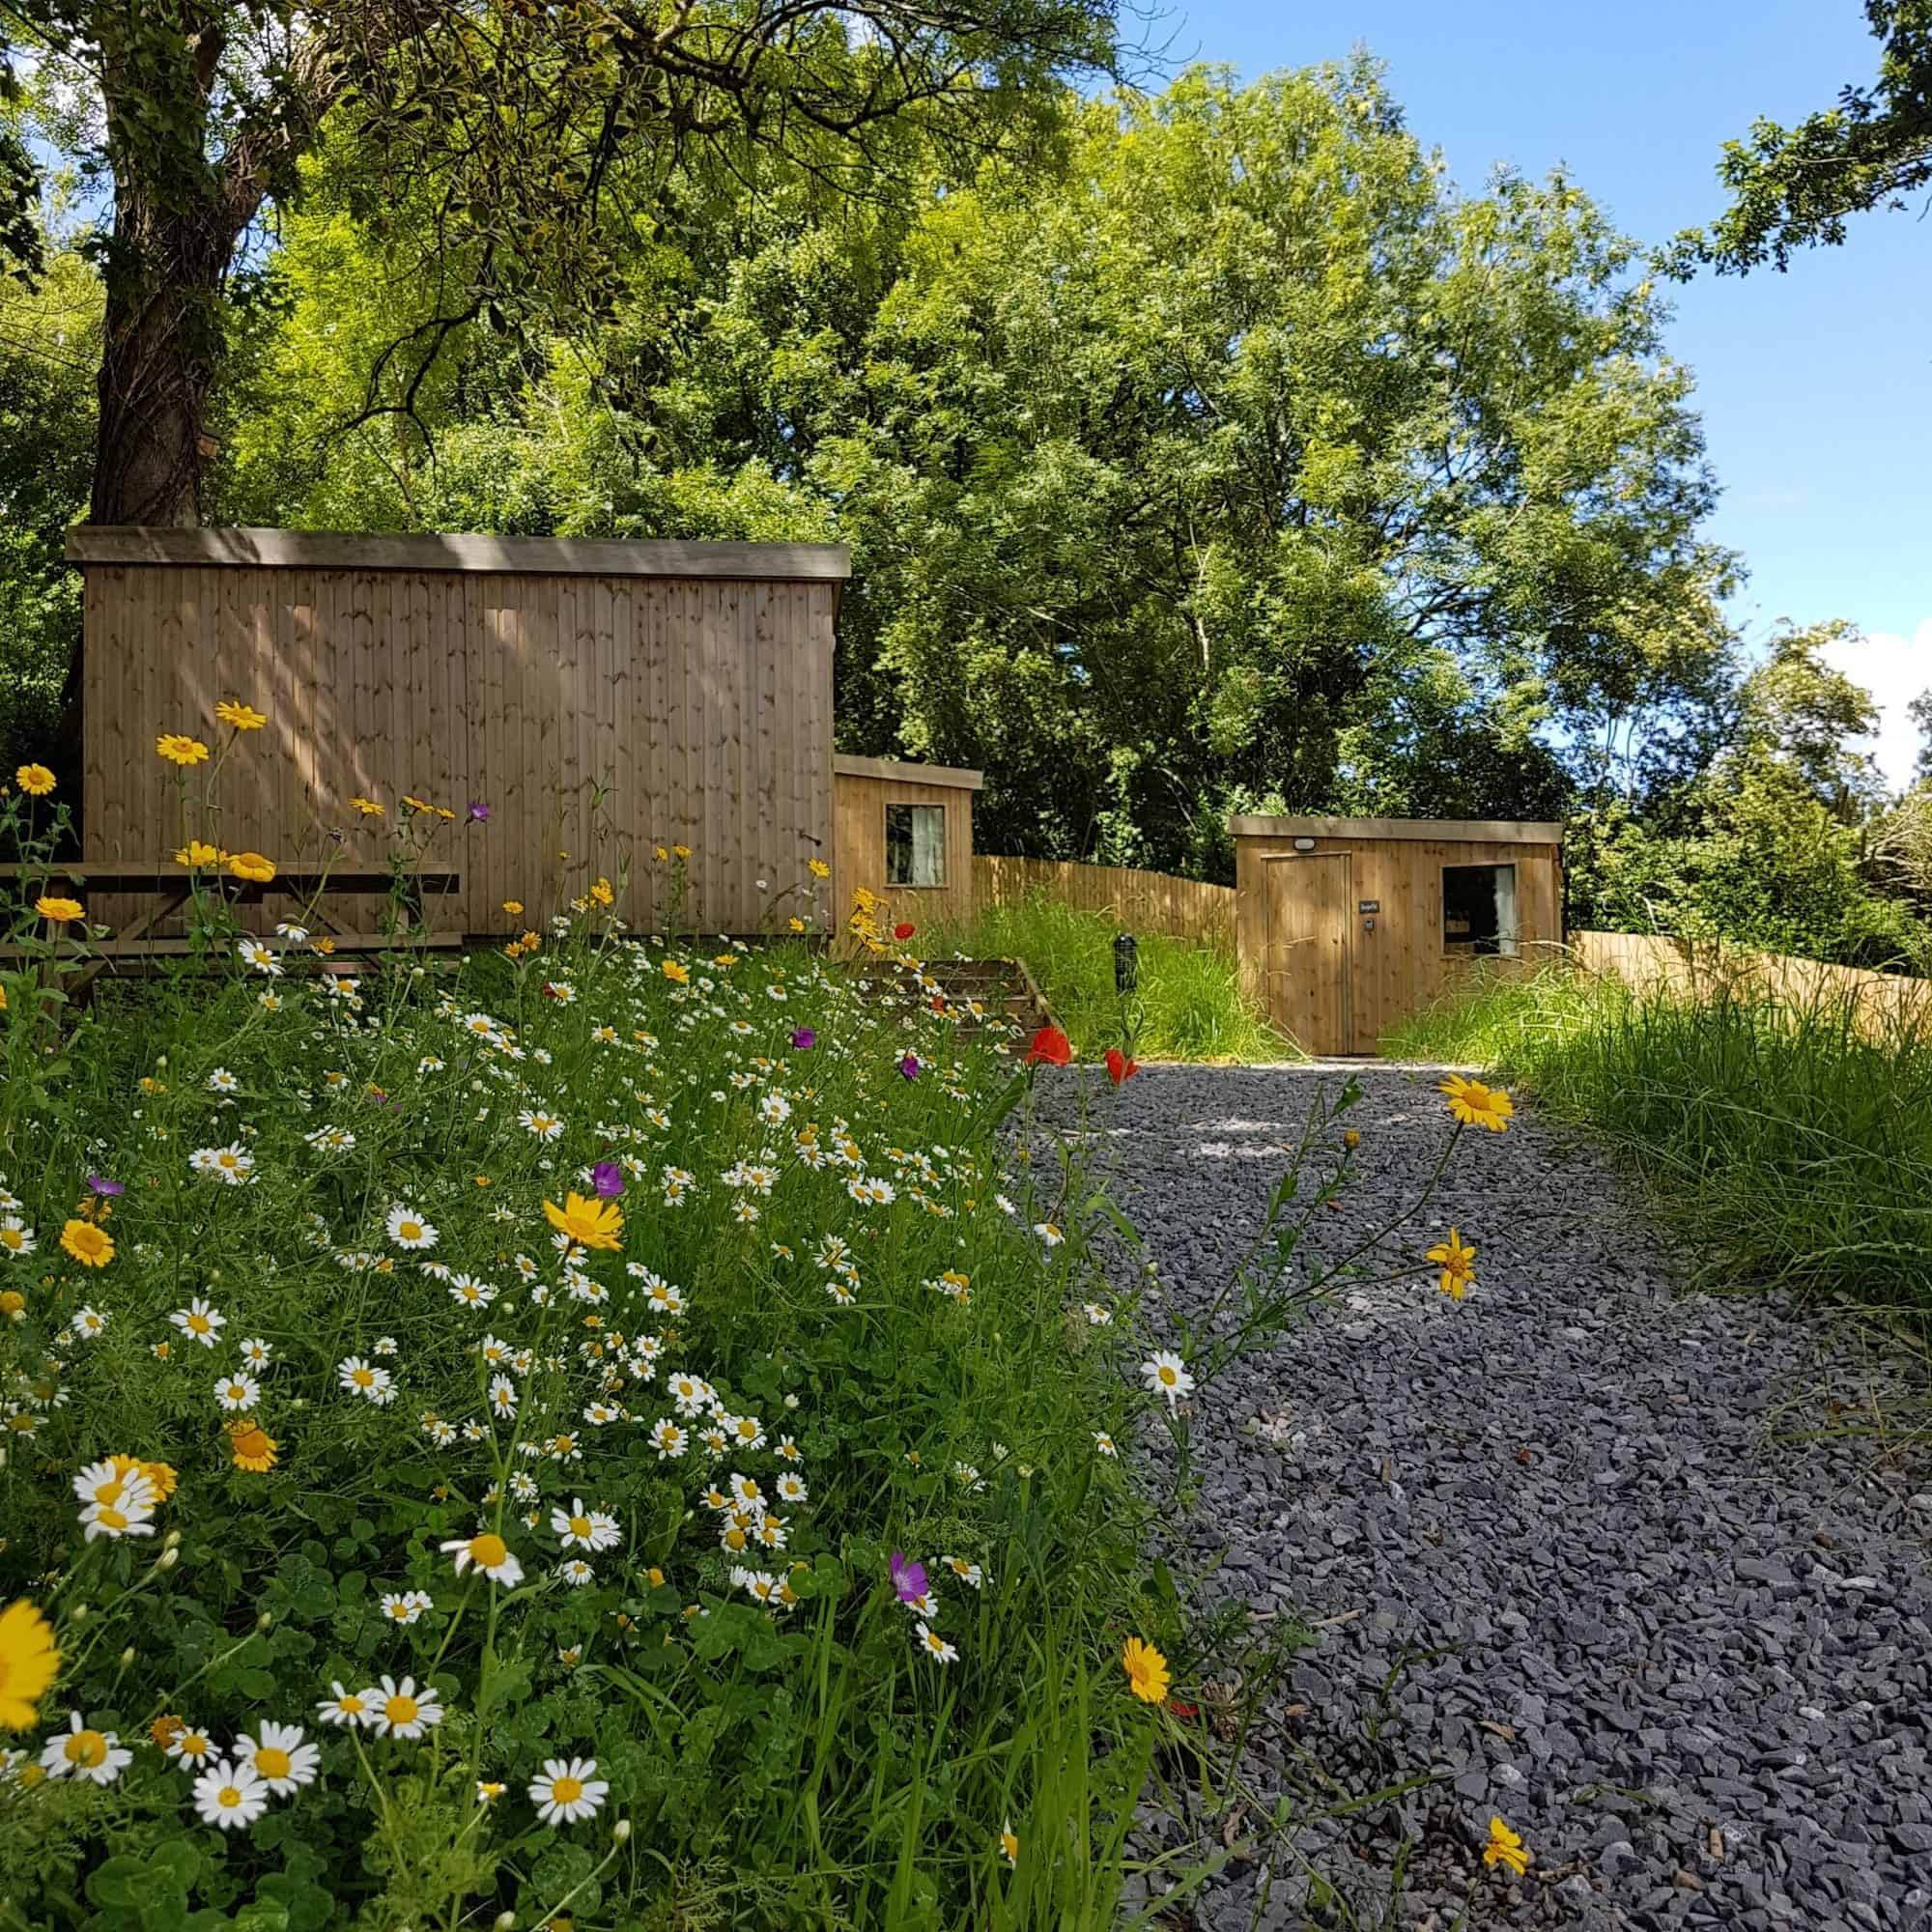 A view of the cabins at Roost Merthyr Tydfil with wild flowers and a background of trees